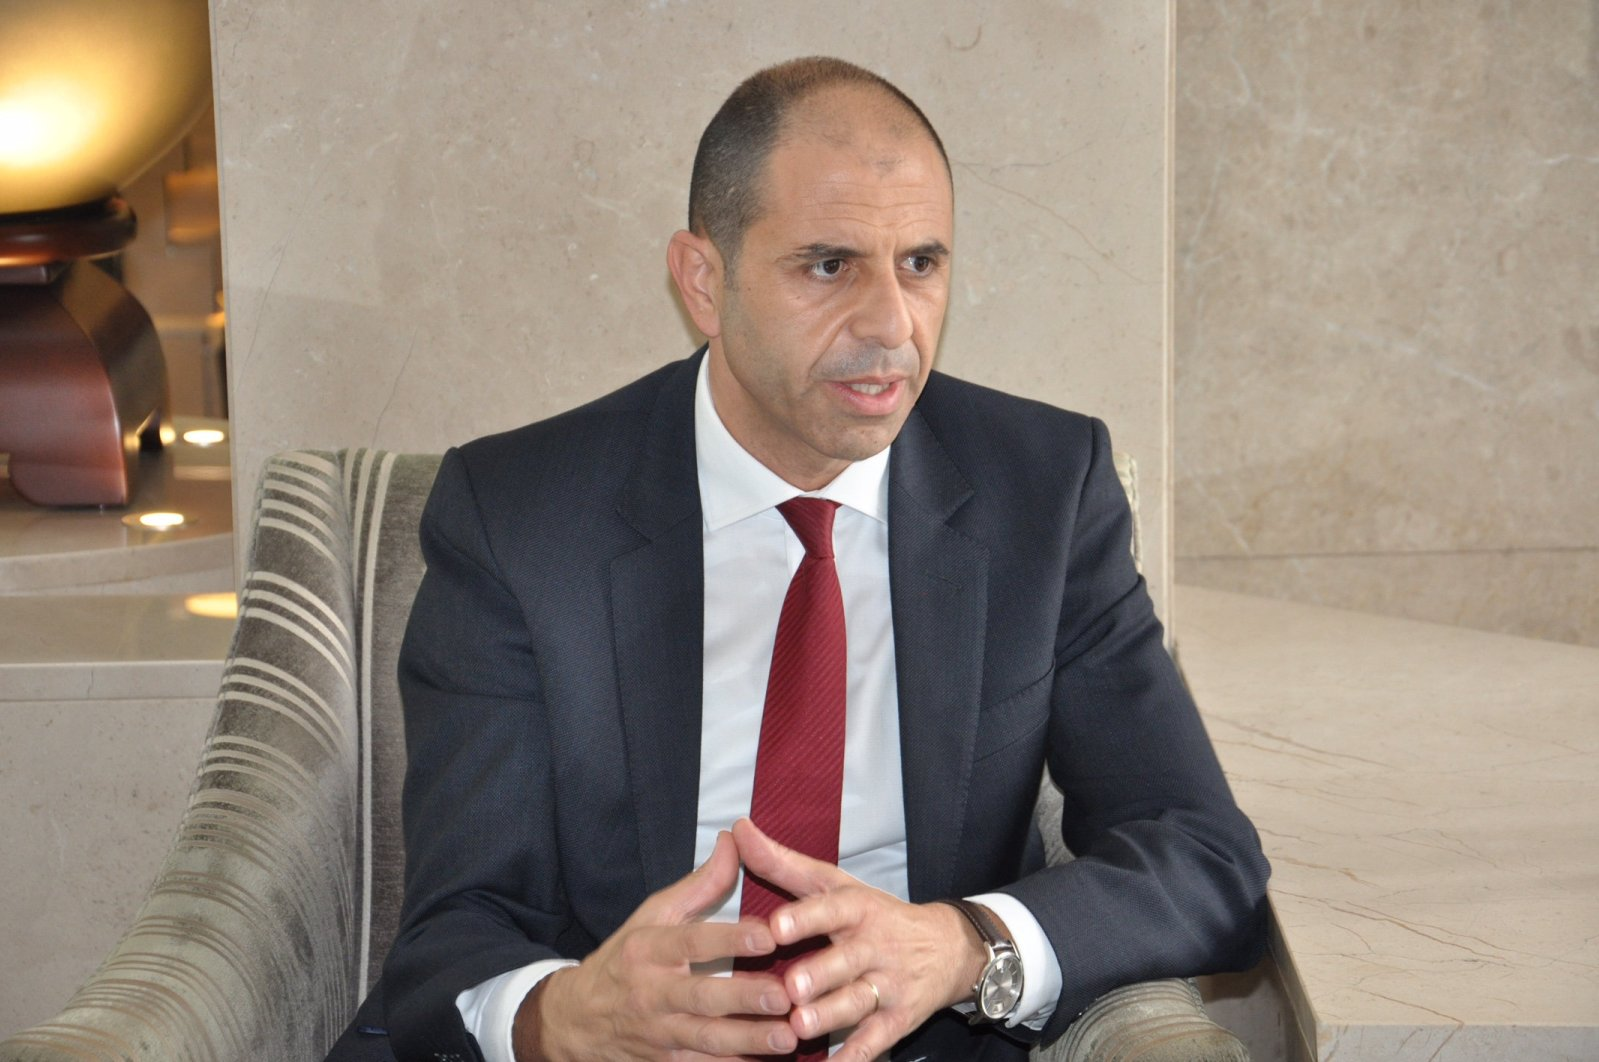 Turkish Cypriot Foreign Minister Kudret Özersay is seen in this undated photo. (Daily Sabah File Photo)